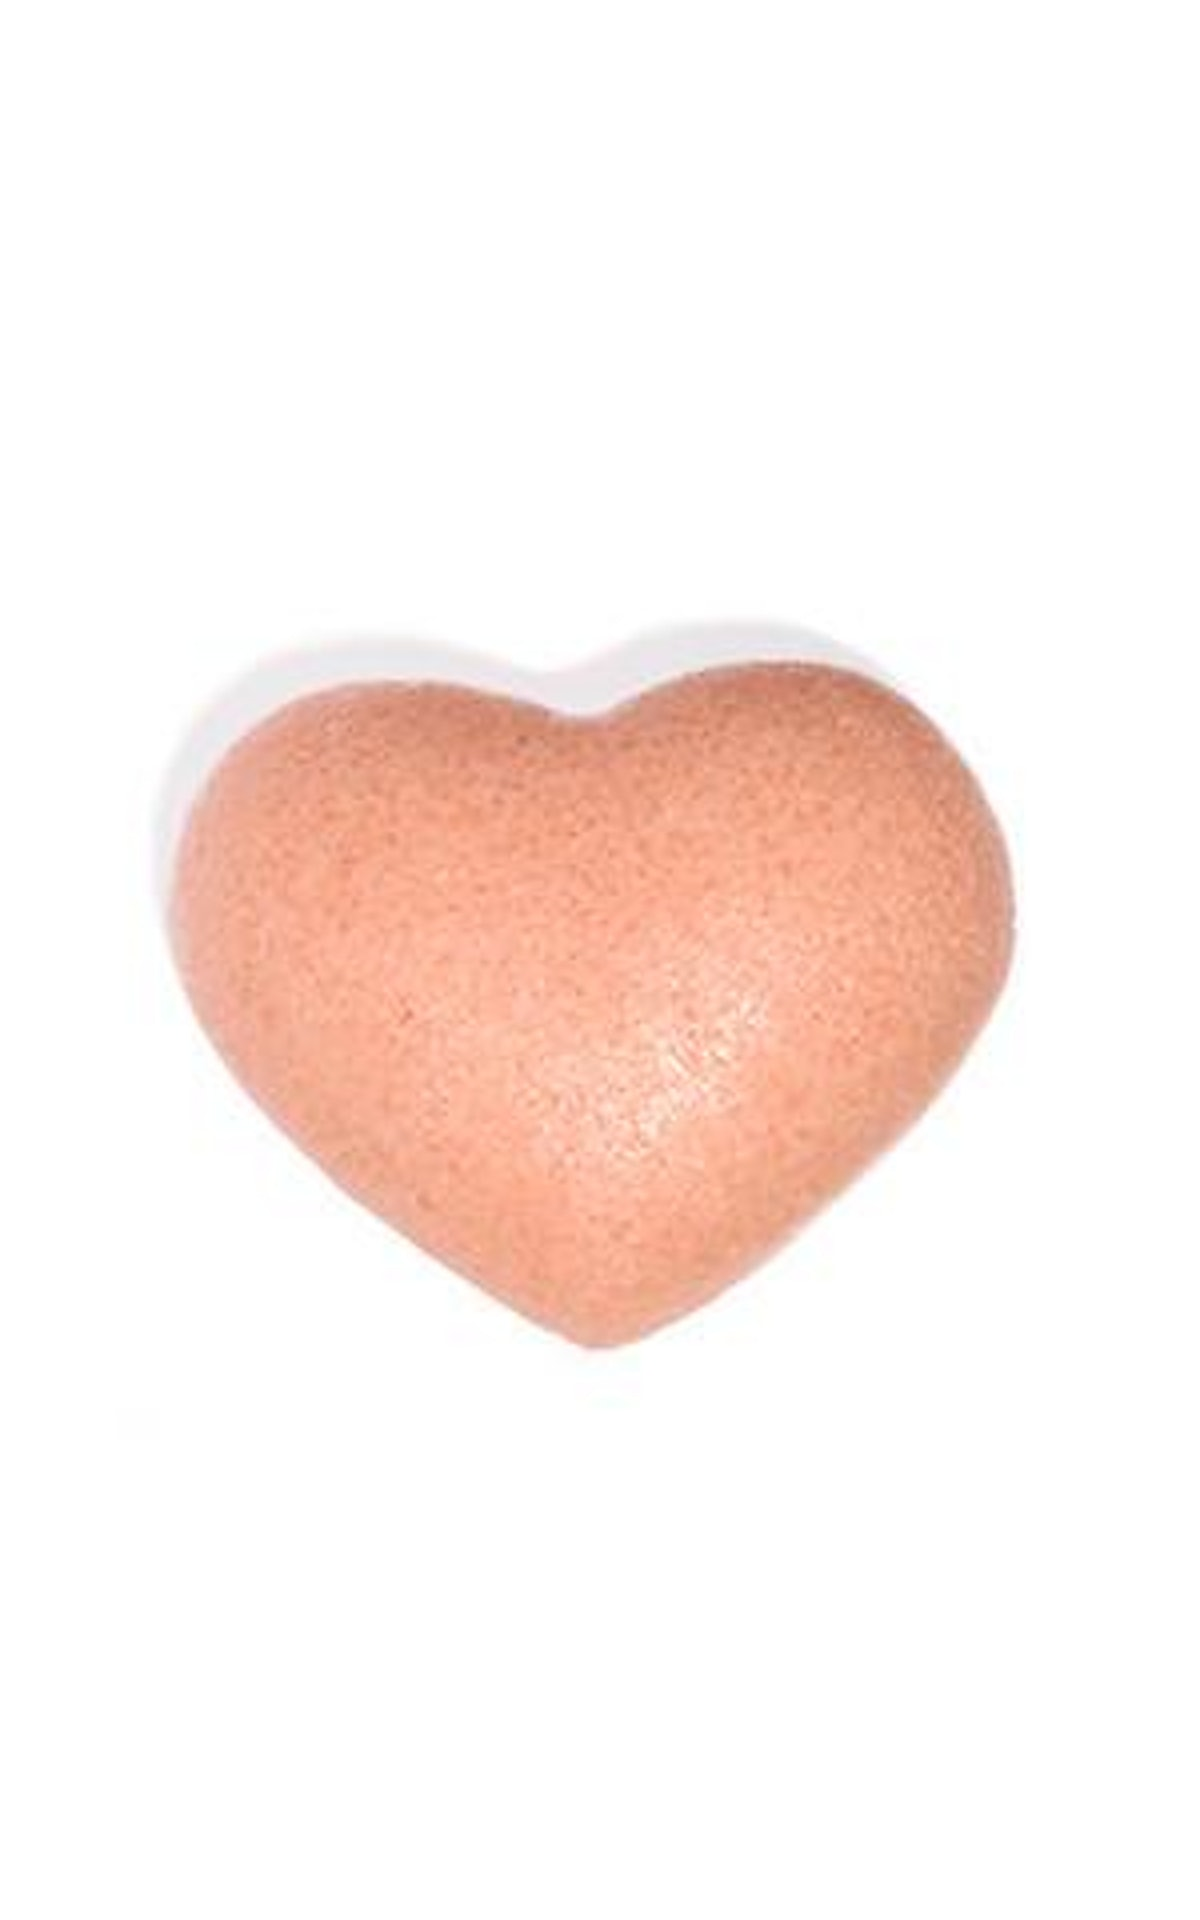 Rose Clay Heart The Cleansing Sponge